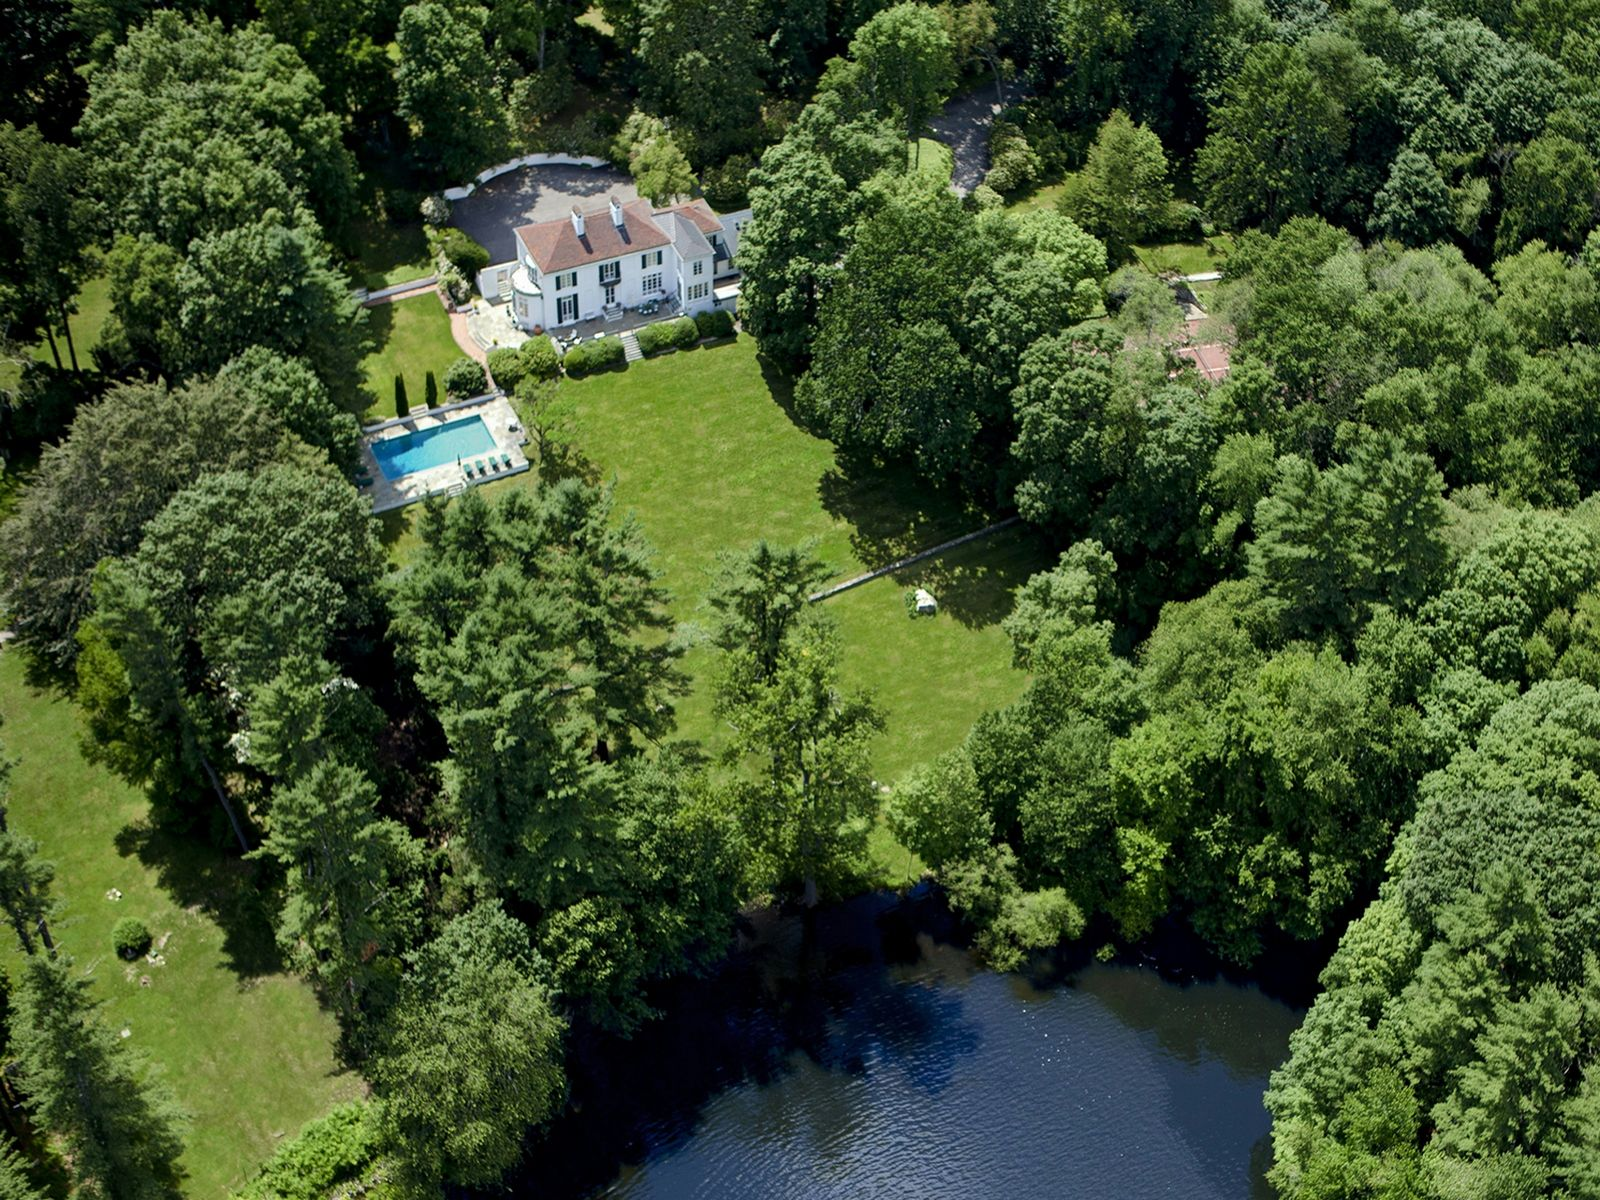 Lake View Estate, Greenwich CT Single Family Home - Greenwich Real Estate